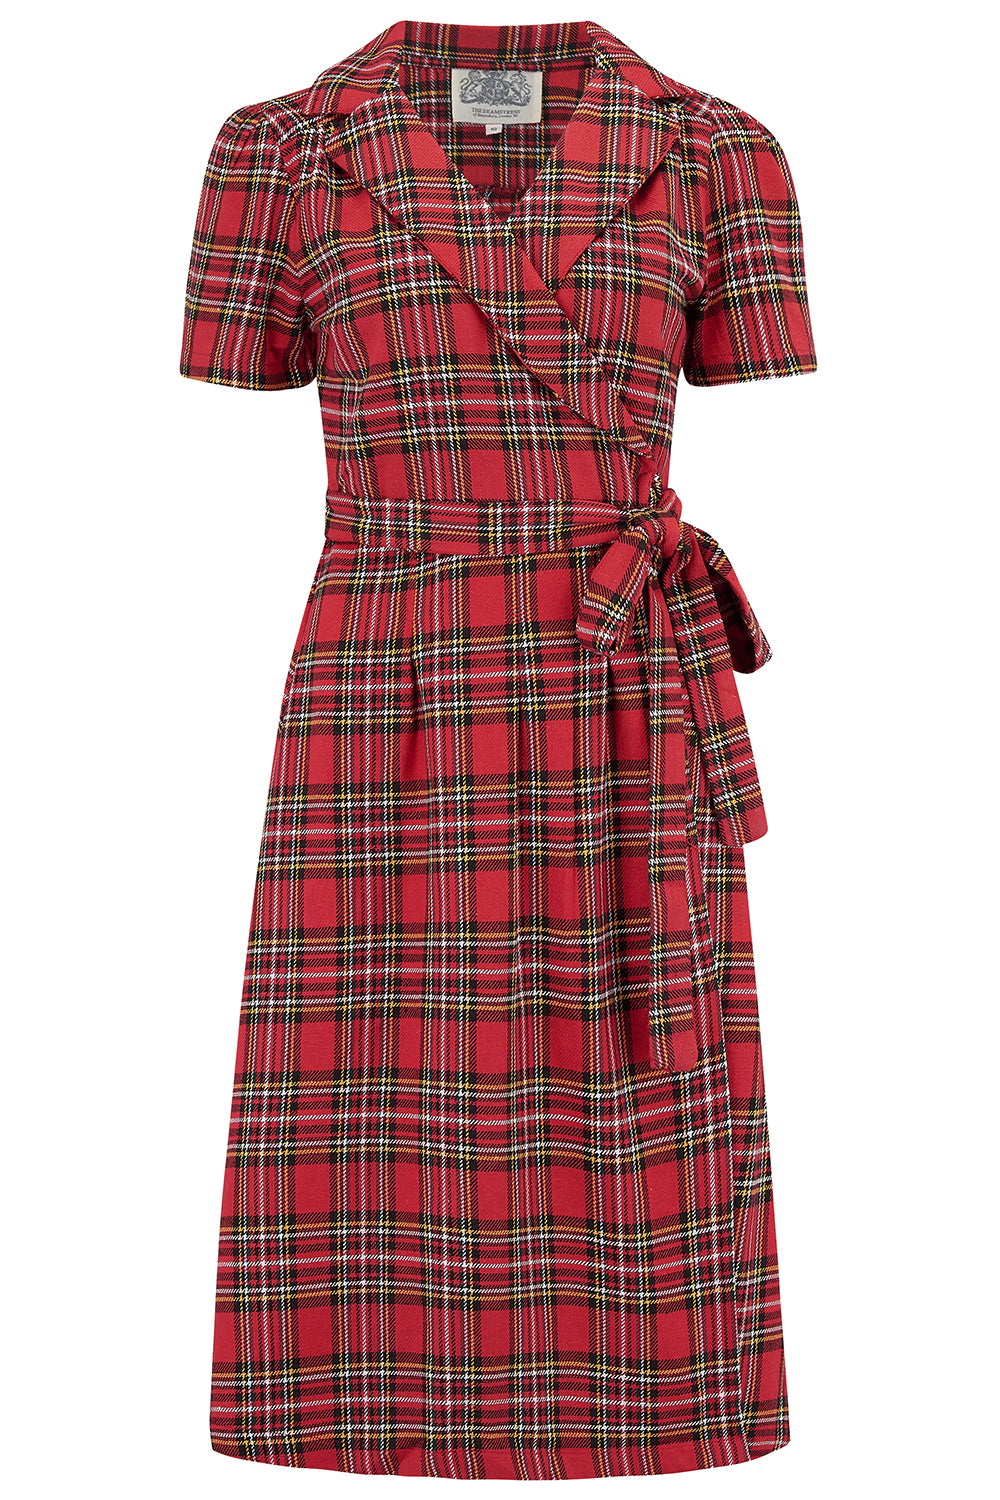 "The Seamstress of Bloomsbury ""Peggy"" Wrap Dress in Traditional Red Tartan , Authentic 1940s Vintage Style - RocknRomance Clothing"